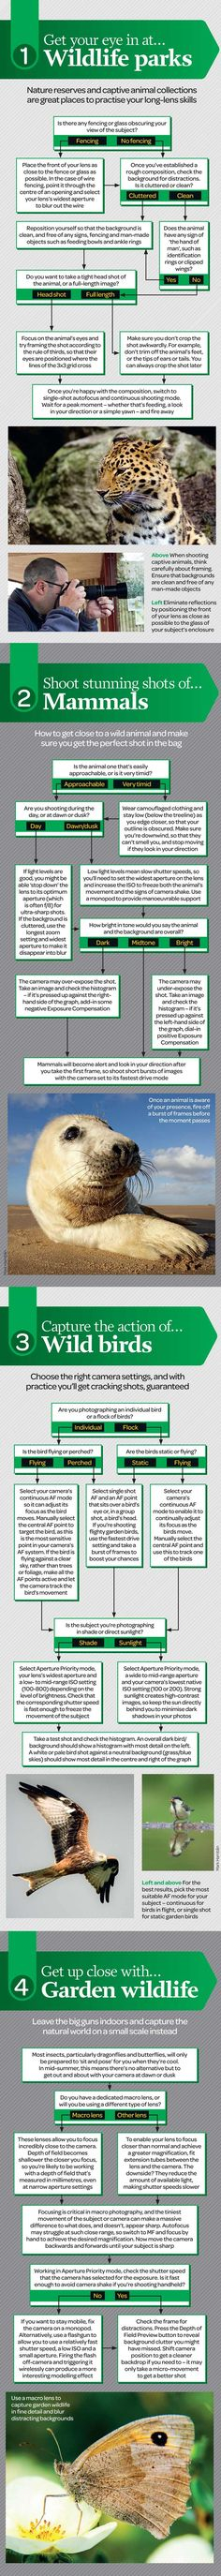 Wildlife photography in any environment: free photography cheat sheet